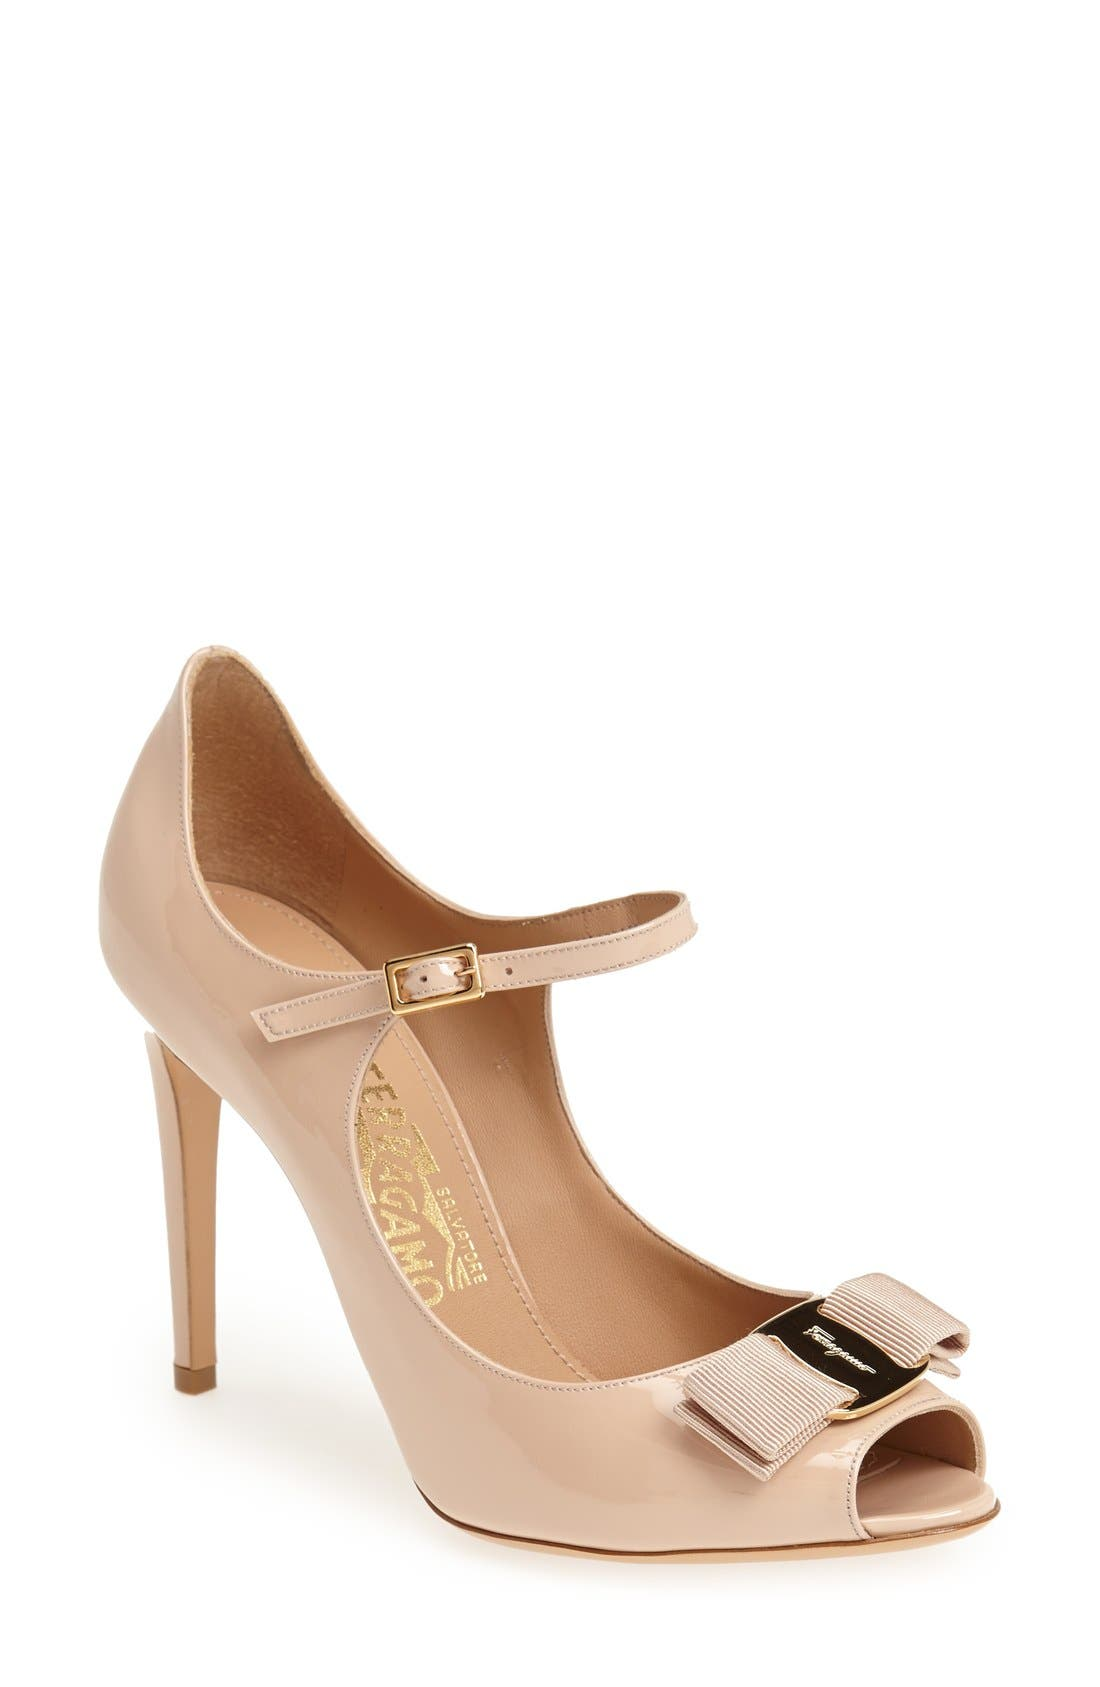 Alternate Image 1 Selected - Salvatore Ferragamo 'Mood' Pump (Women)